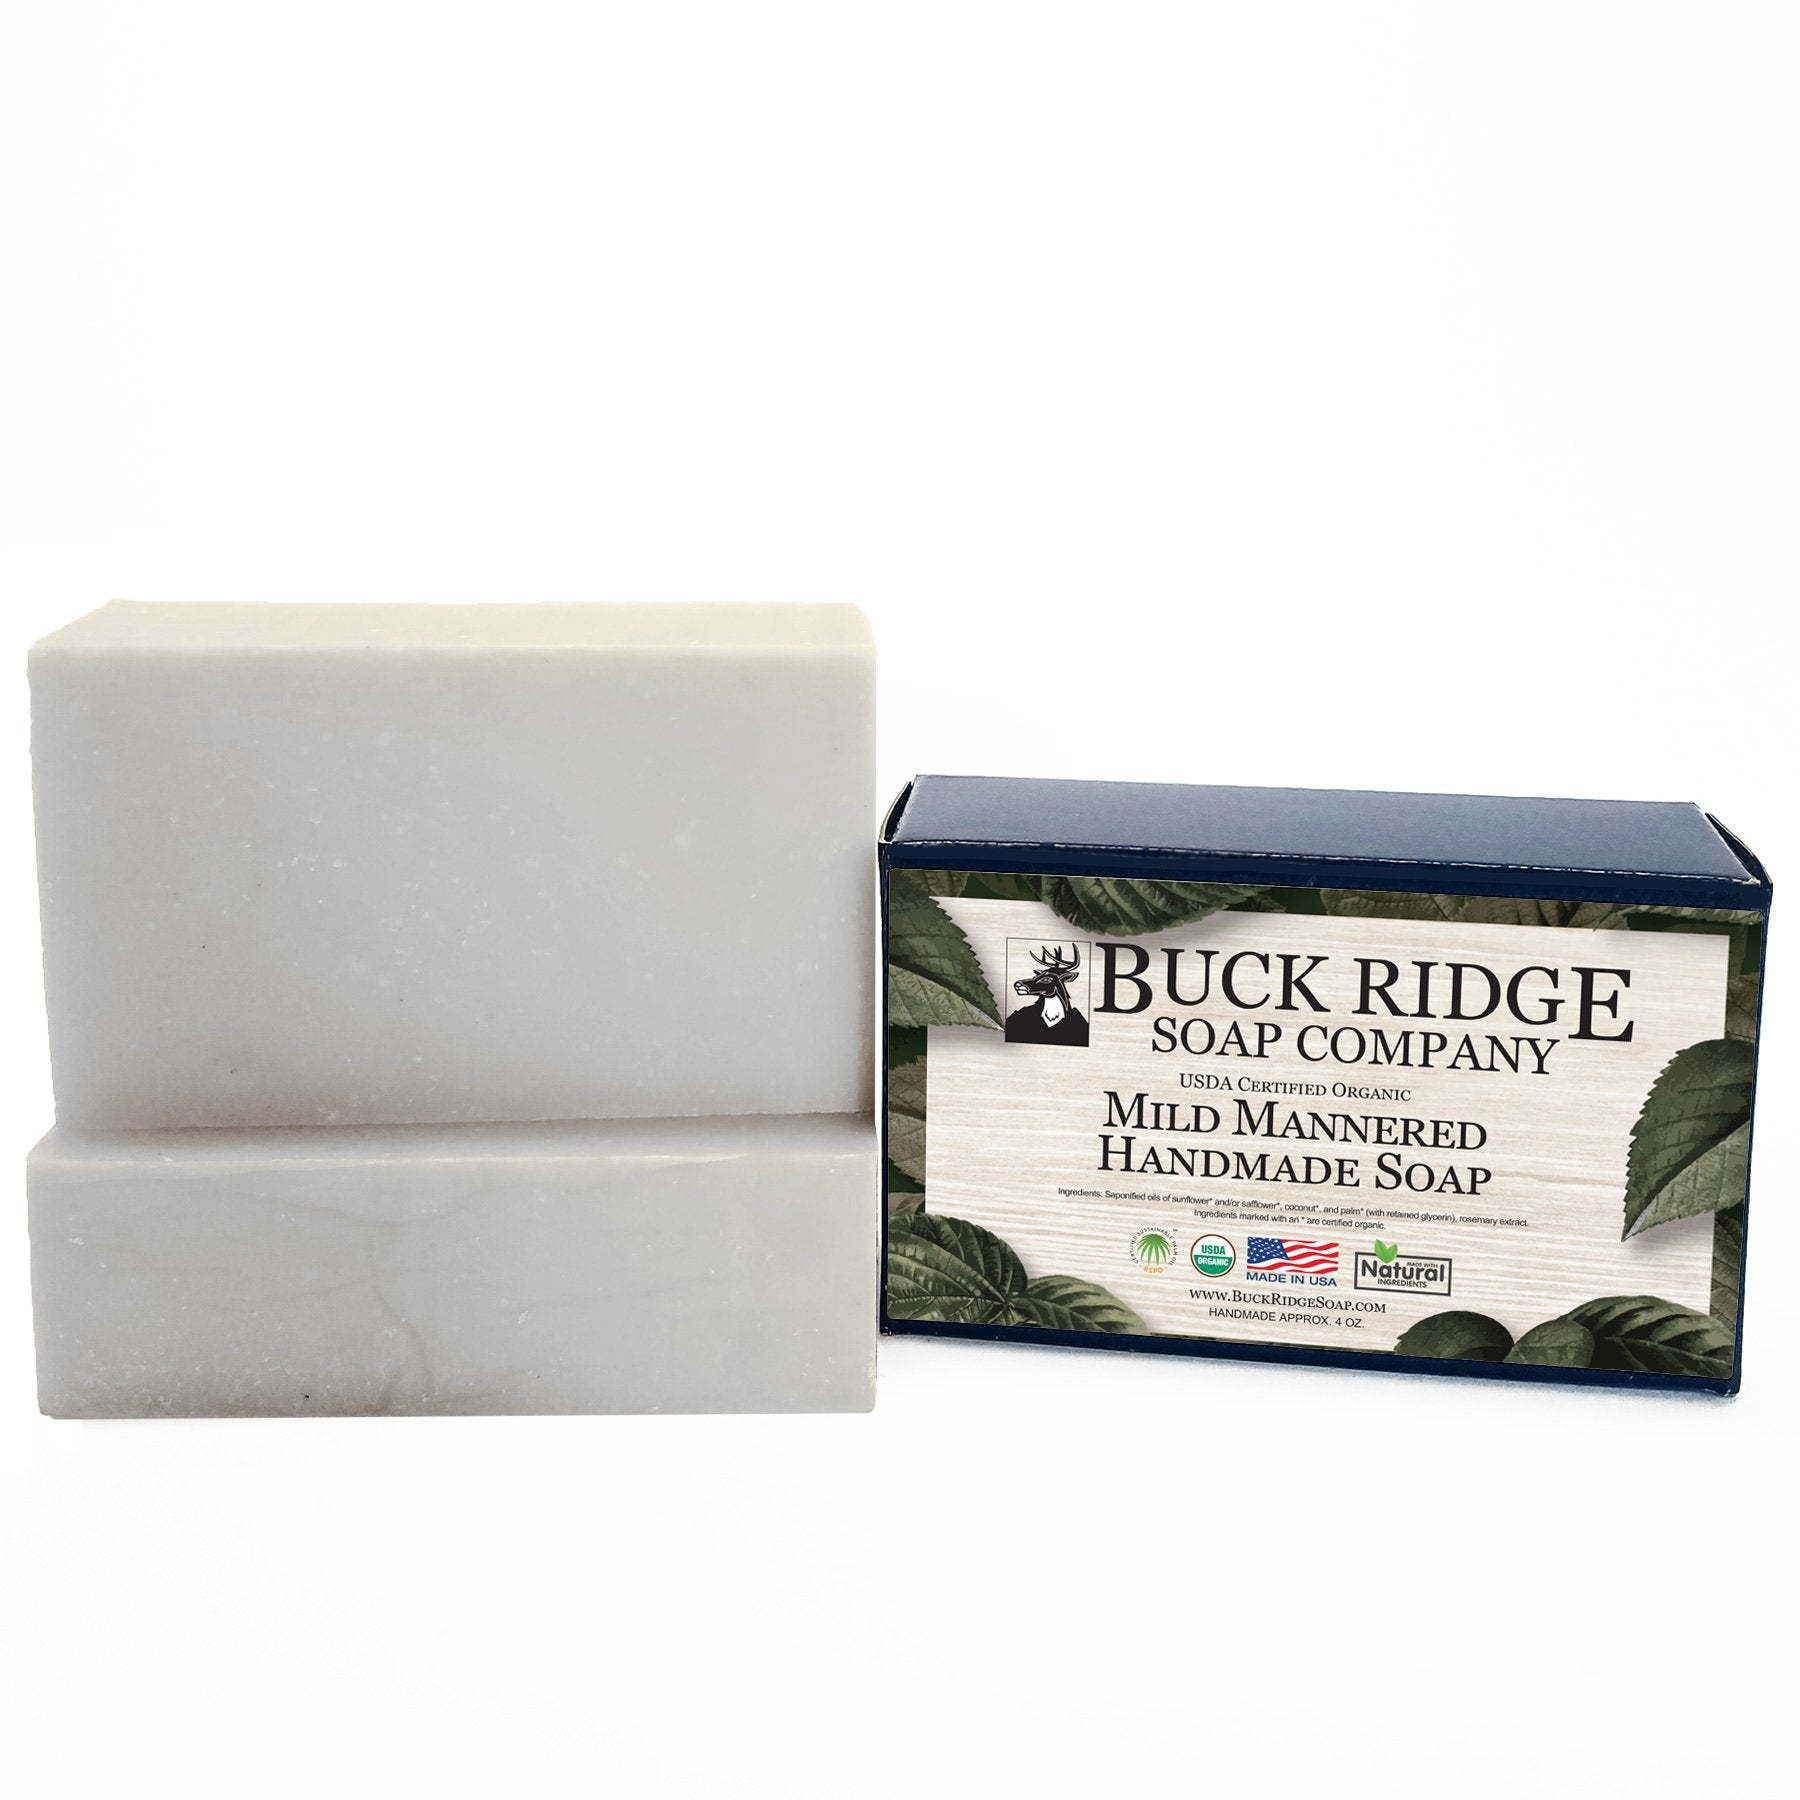 USDA Certified Organic UNSCENTED Handmade Soap Bar